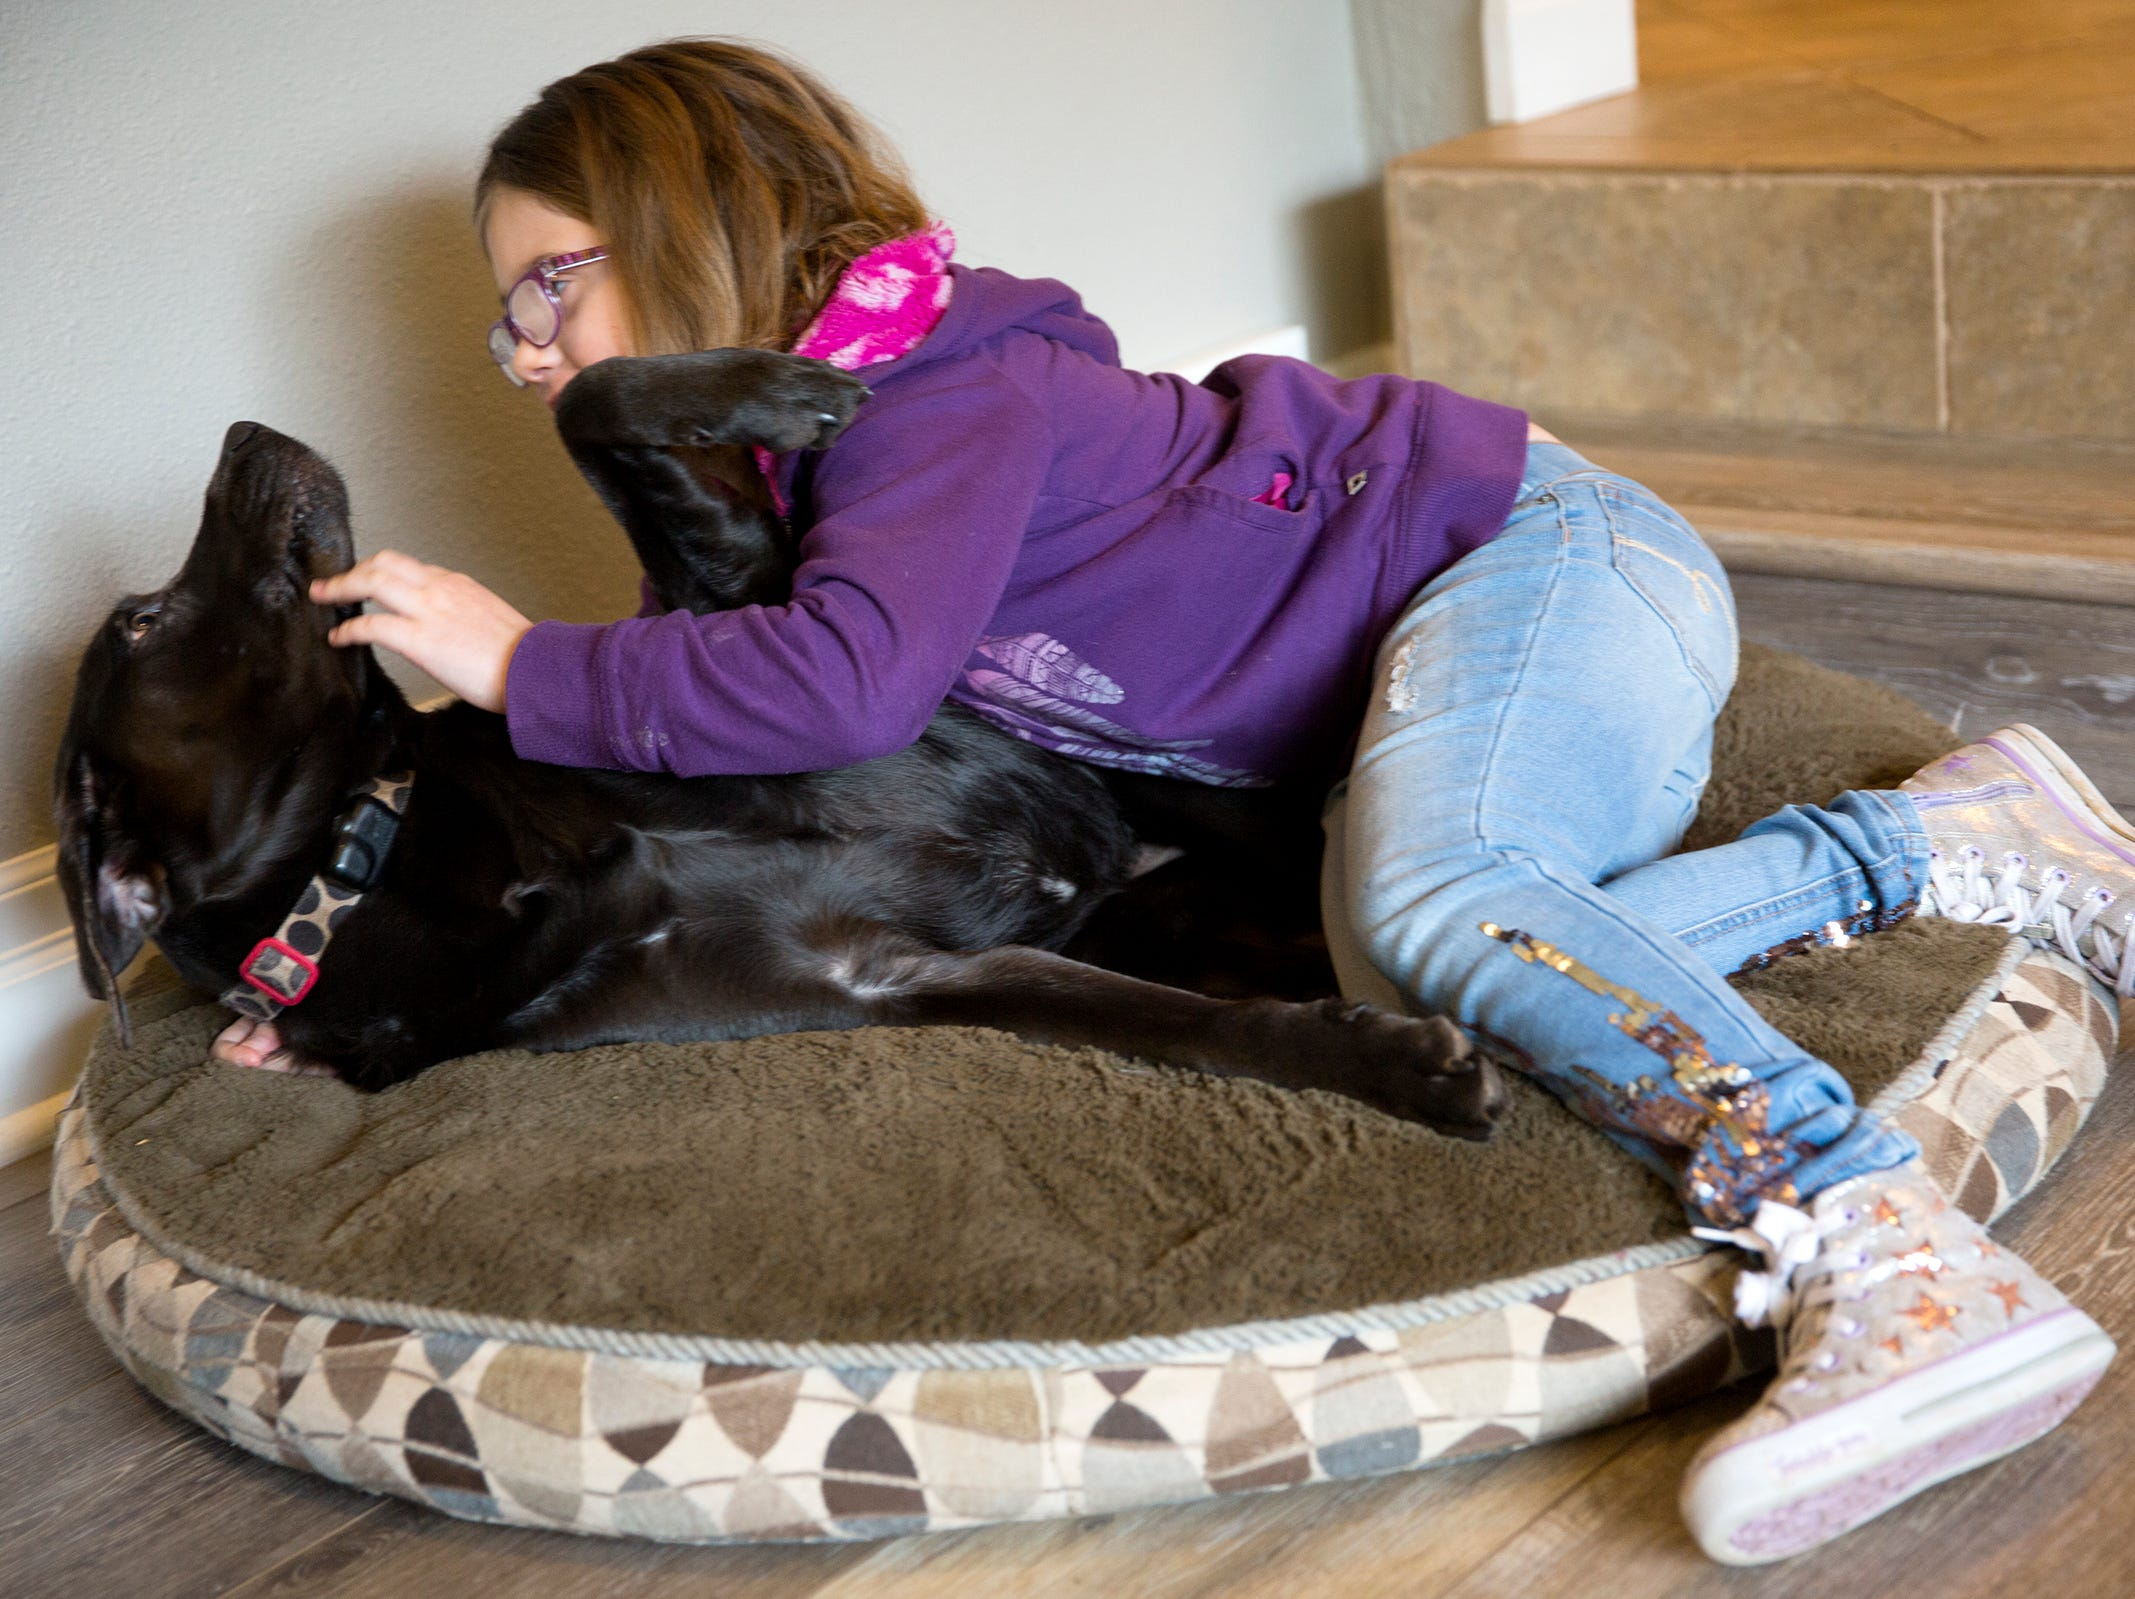 Haley Pollman, 9, plays with her dog Lucy at her home in Salem on Saturday, Feb. 23, 2019.